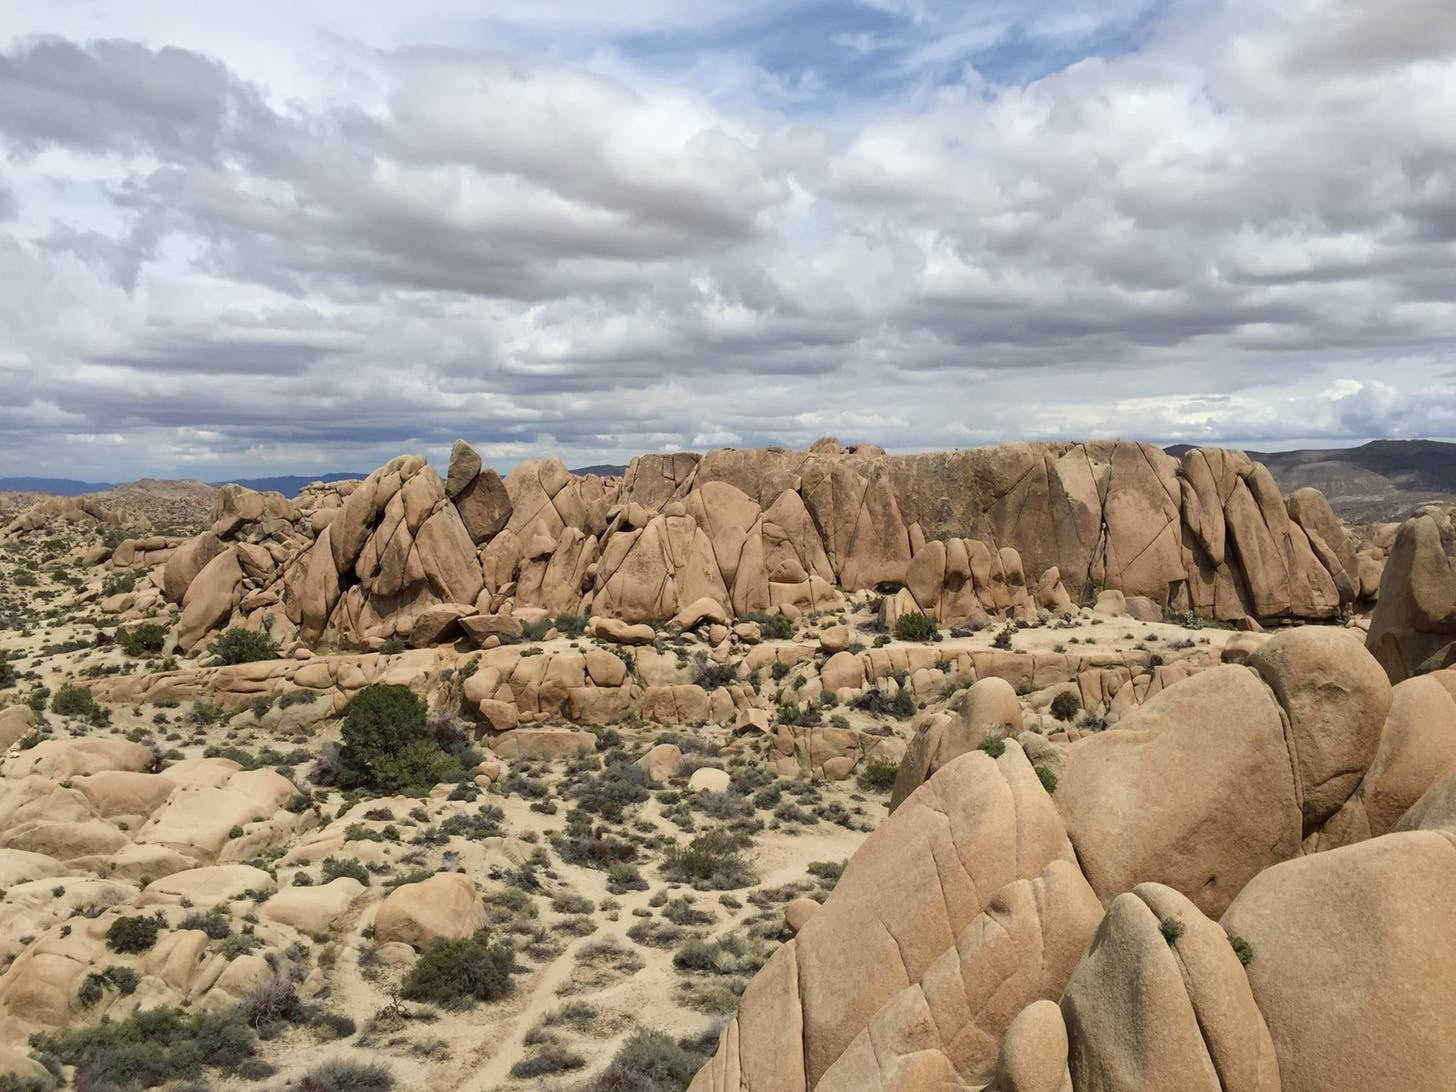 Cloud sky over a landscape of large boulders in the desert.